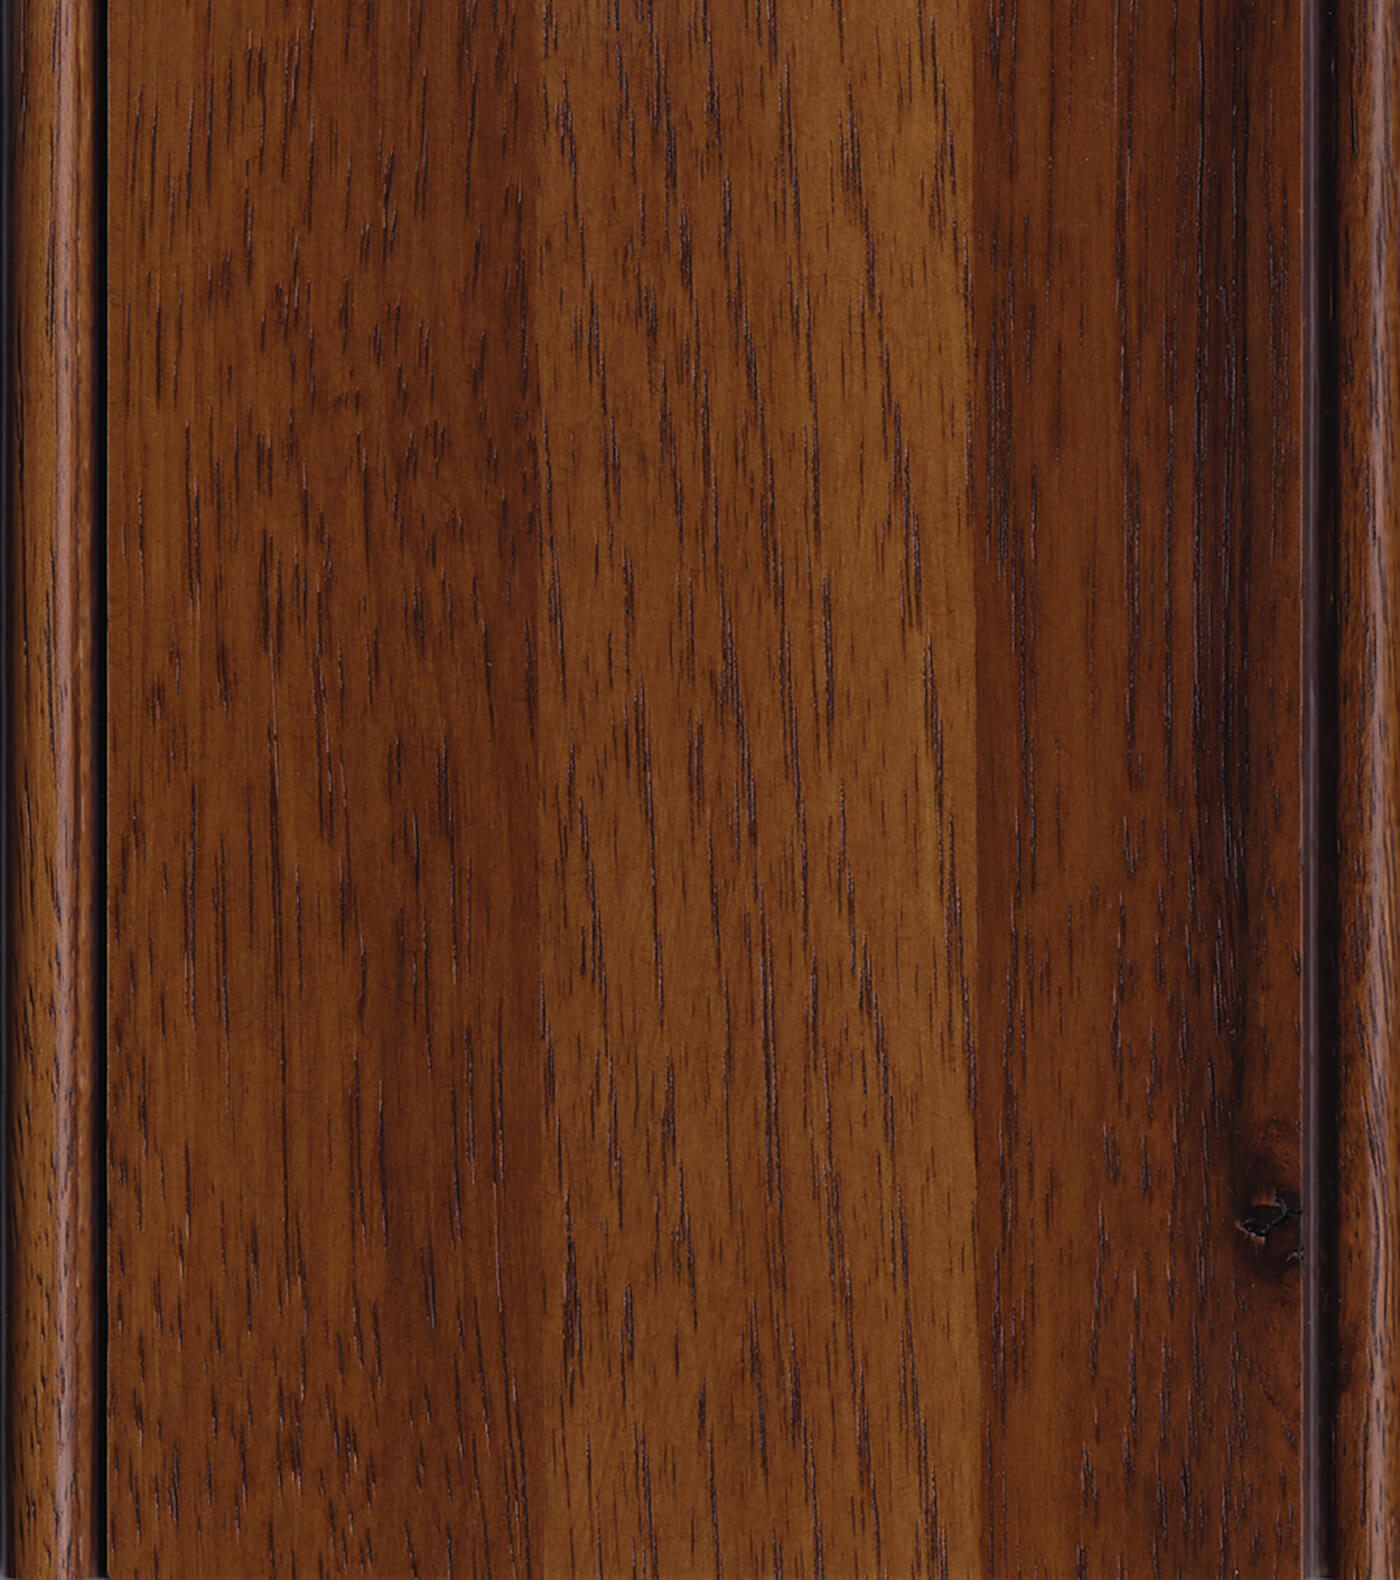 Allspice Stain on Hickory or Rustic Hickory